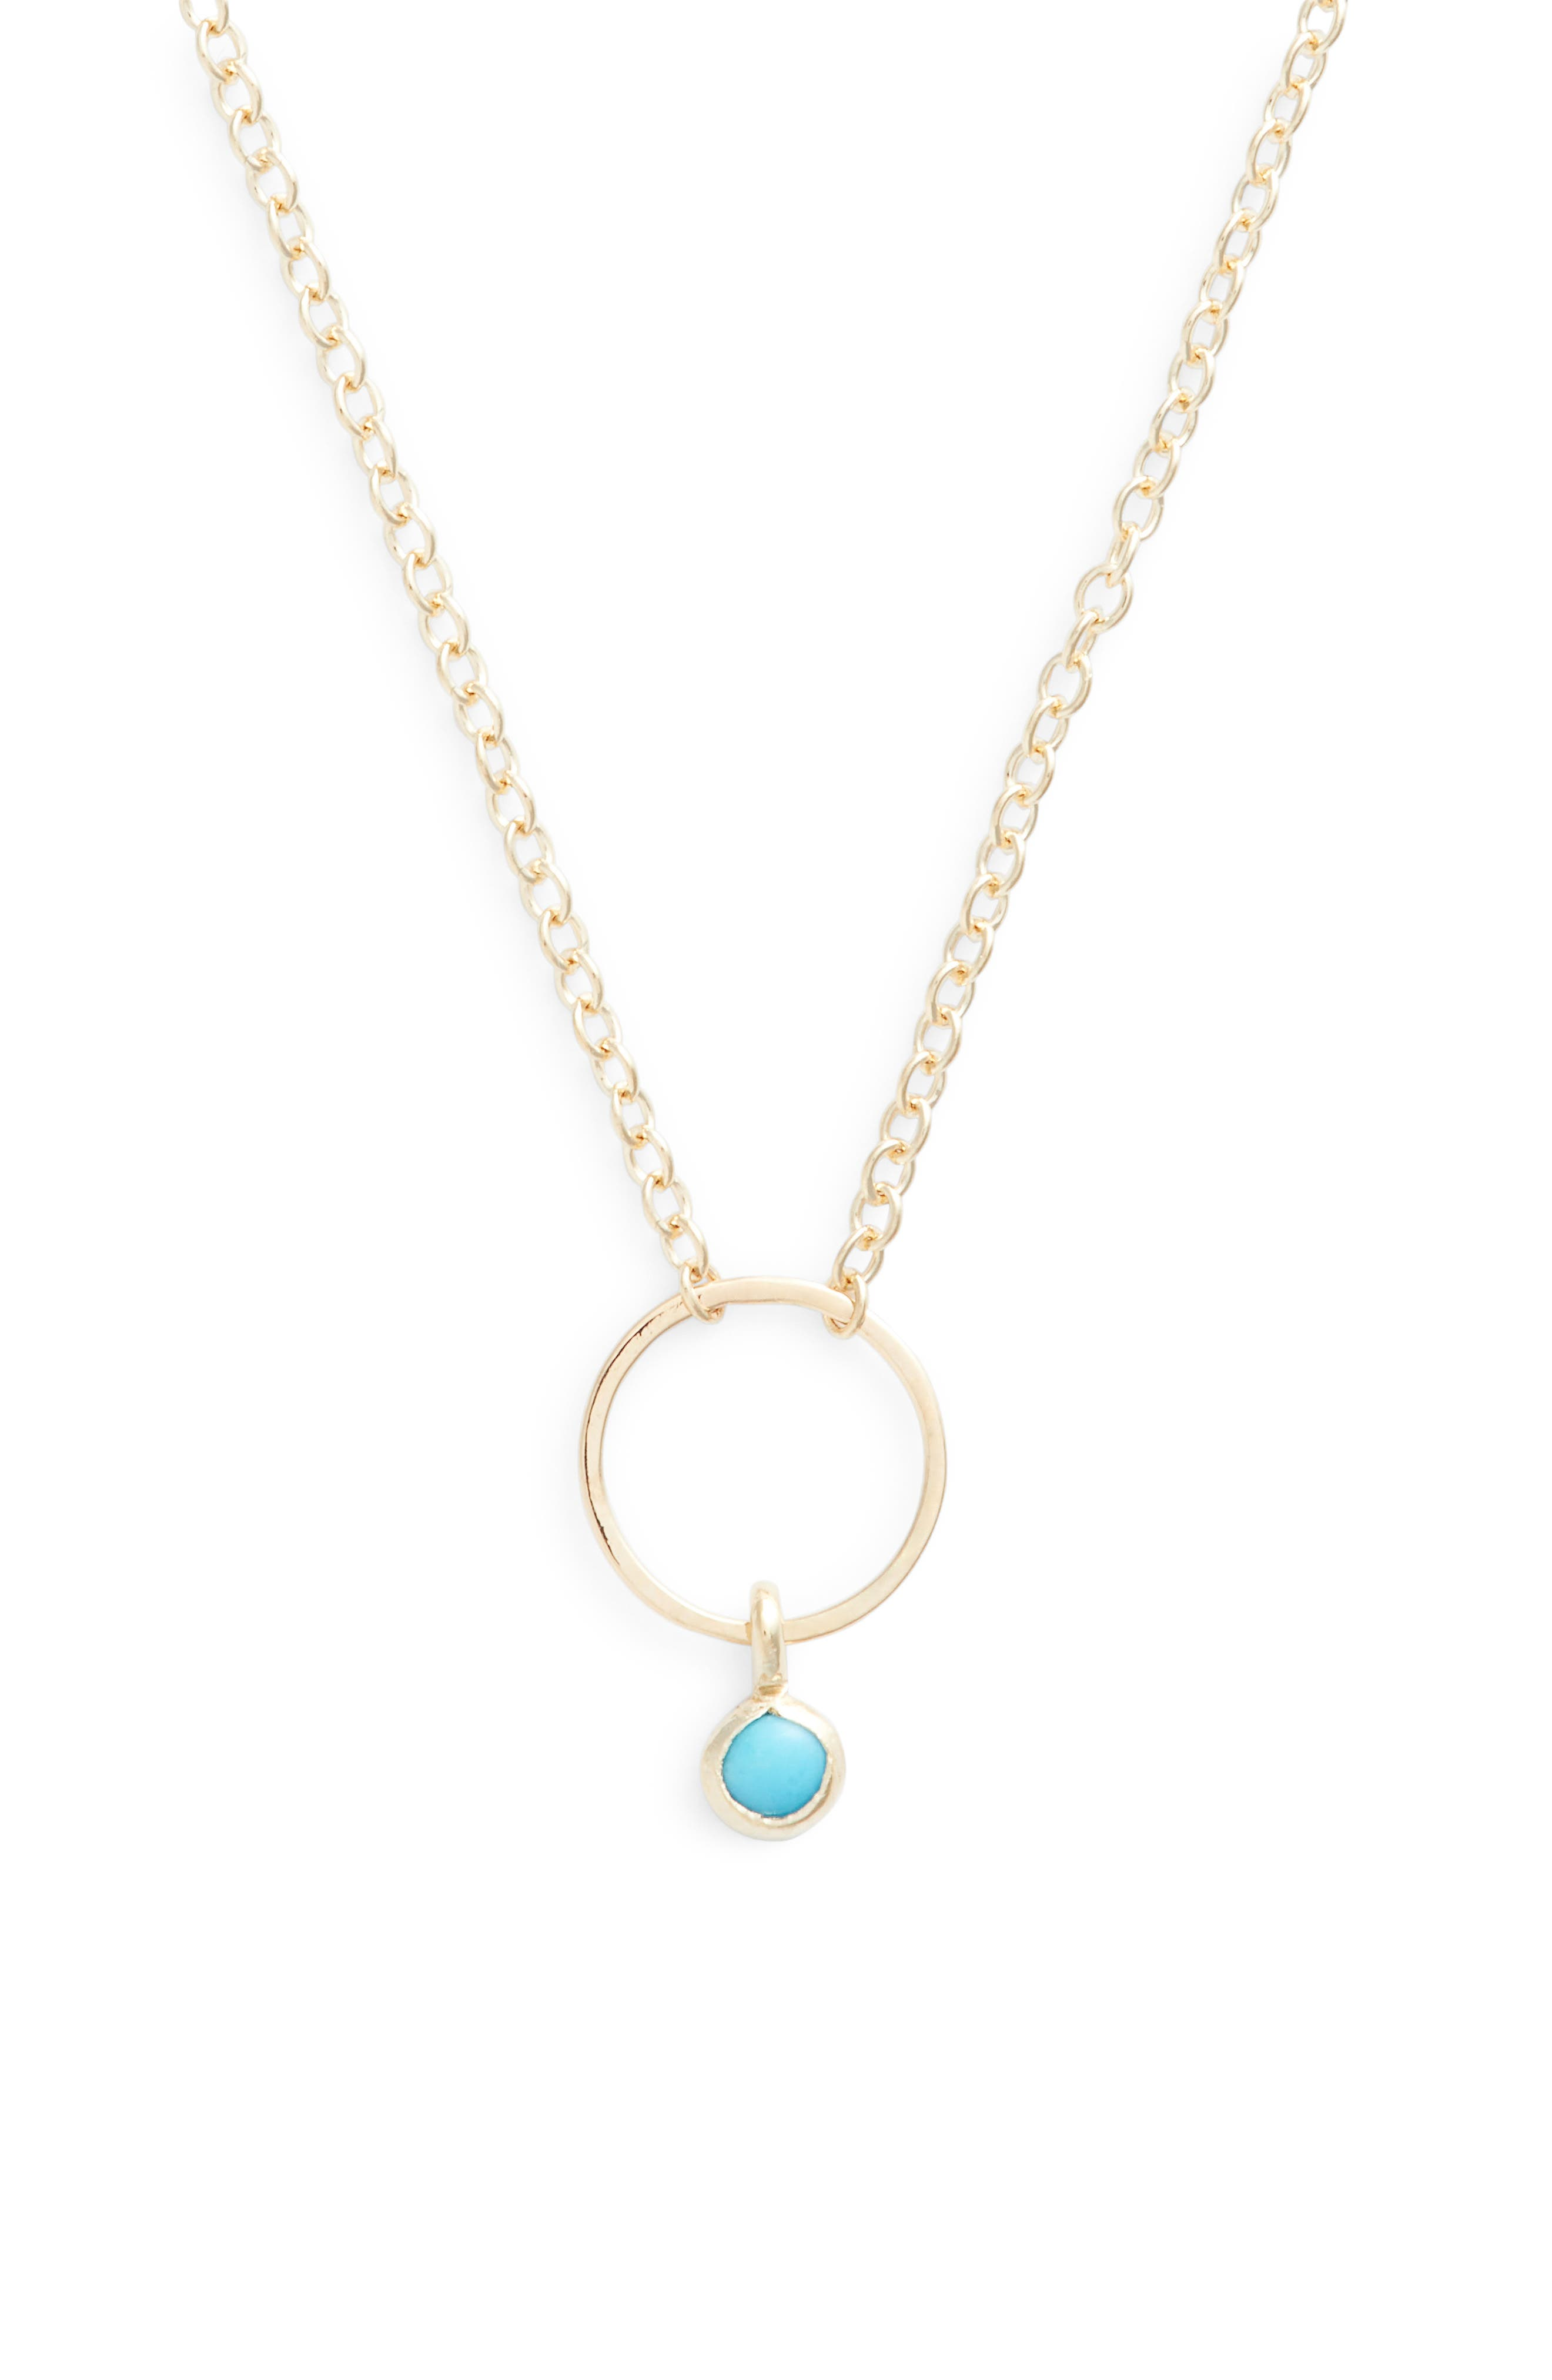 Dangling Turquoise Circle Pendant Necklace,                         Main,                         color, YELLOW GOLD